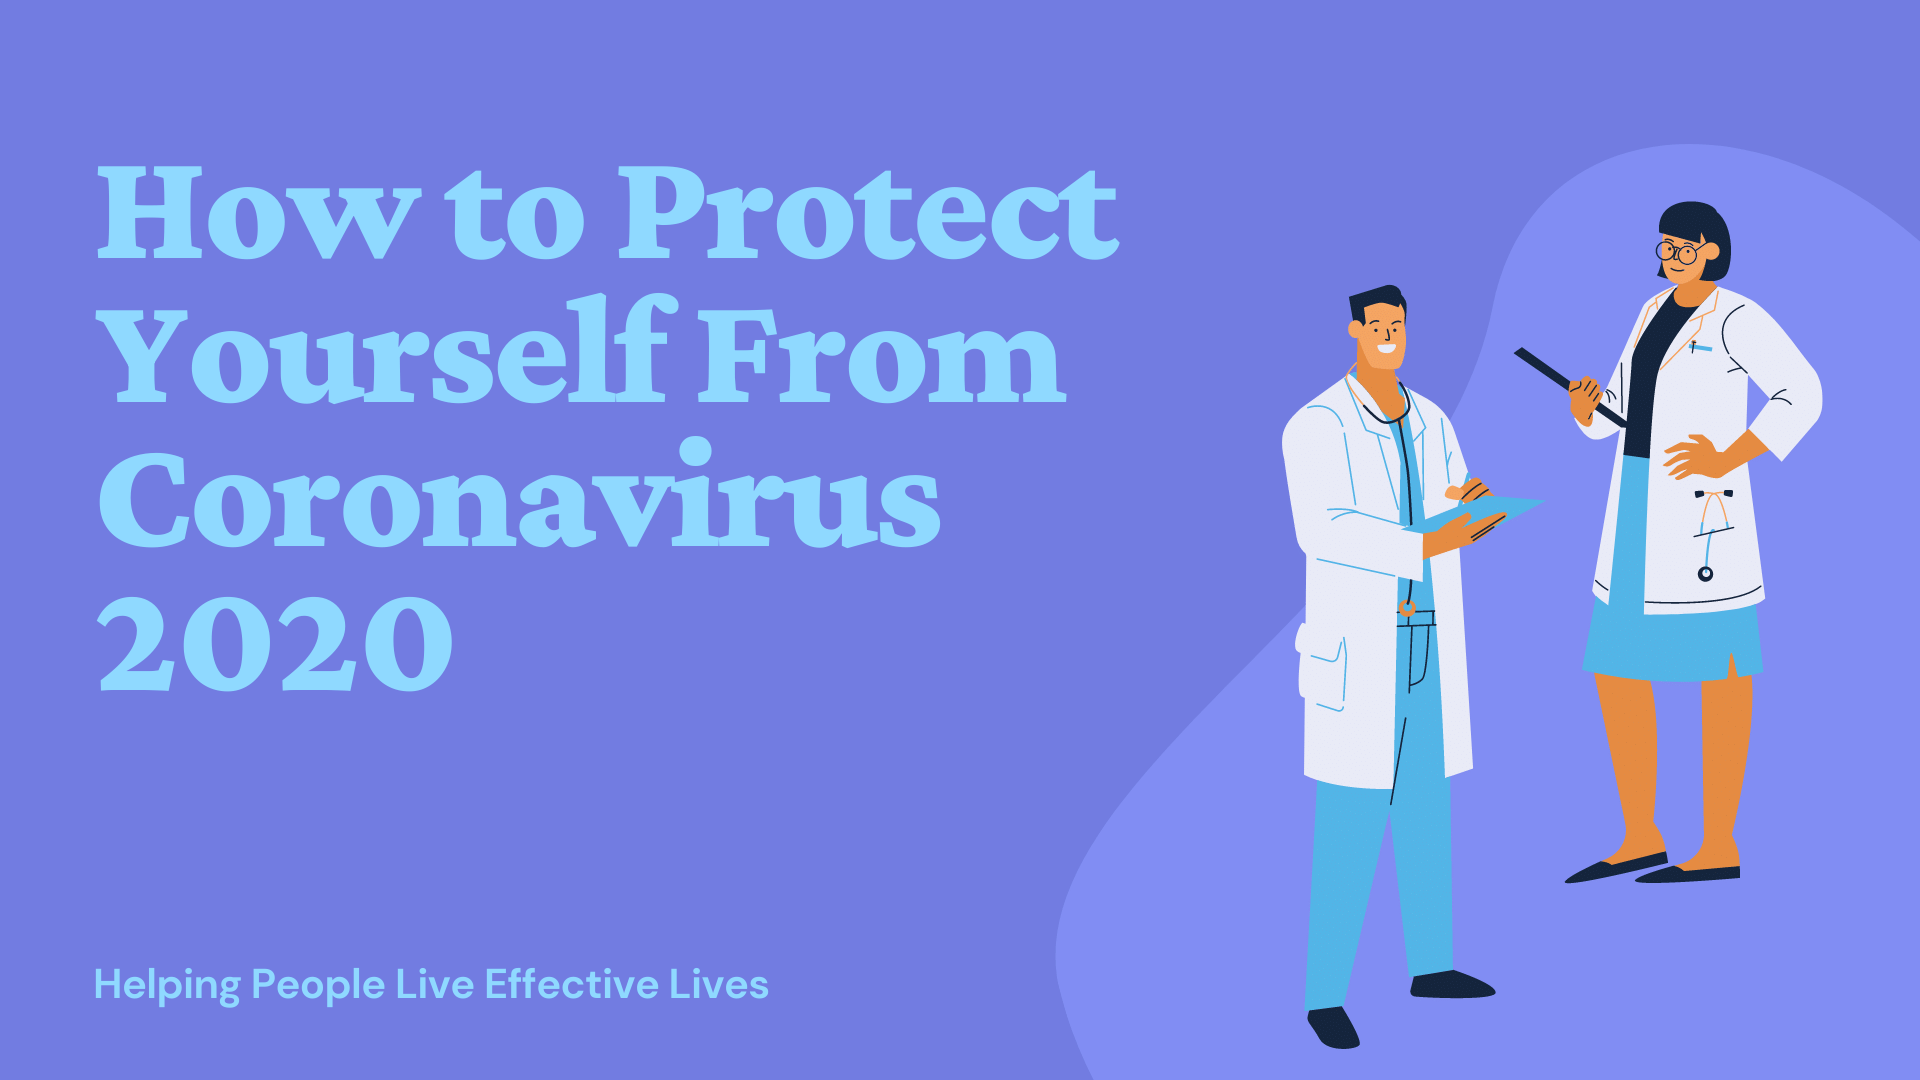 How to Protect Yourself From Coronavirus 2020